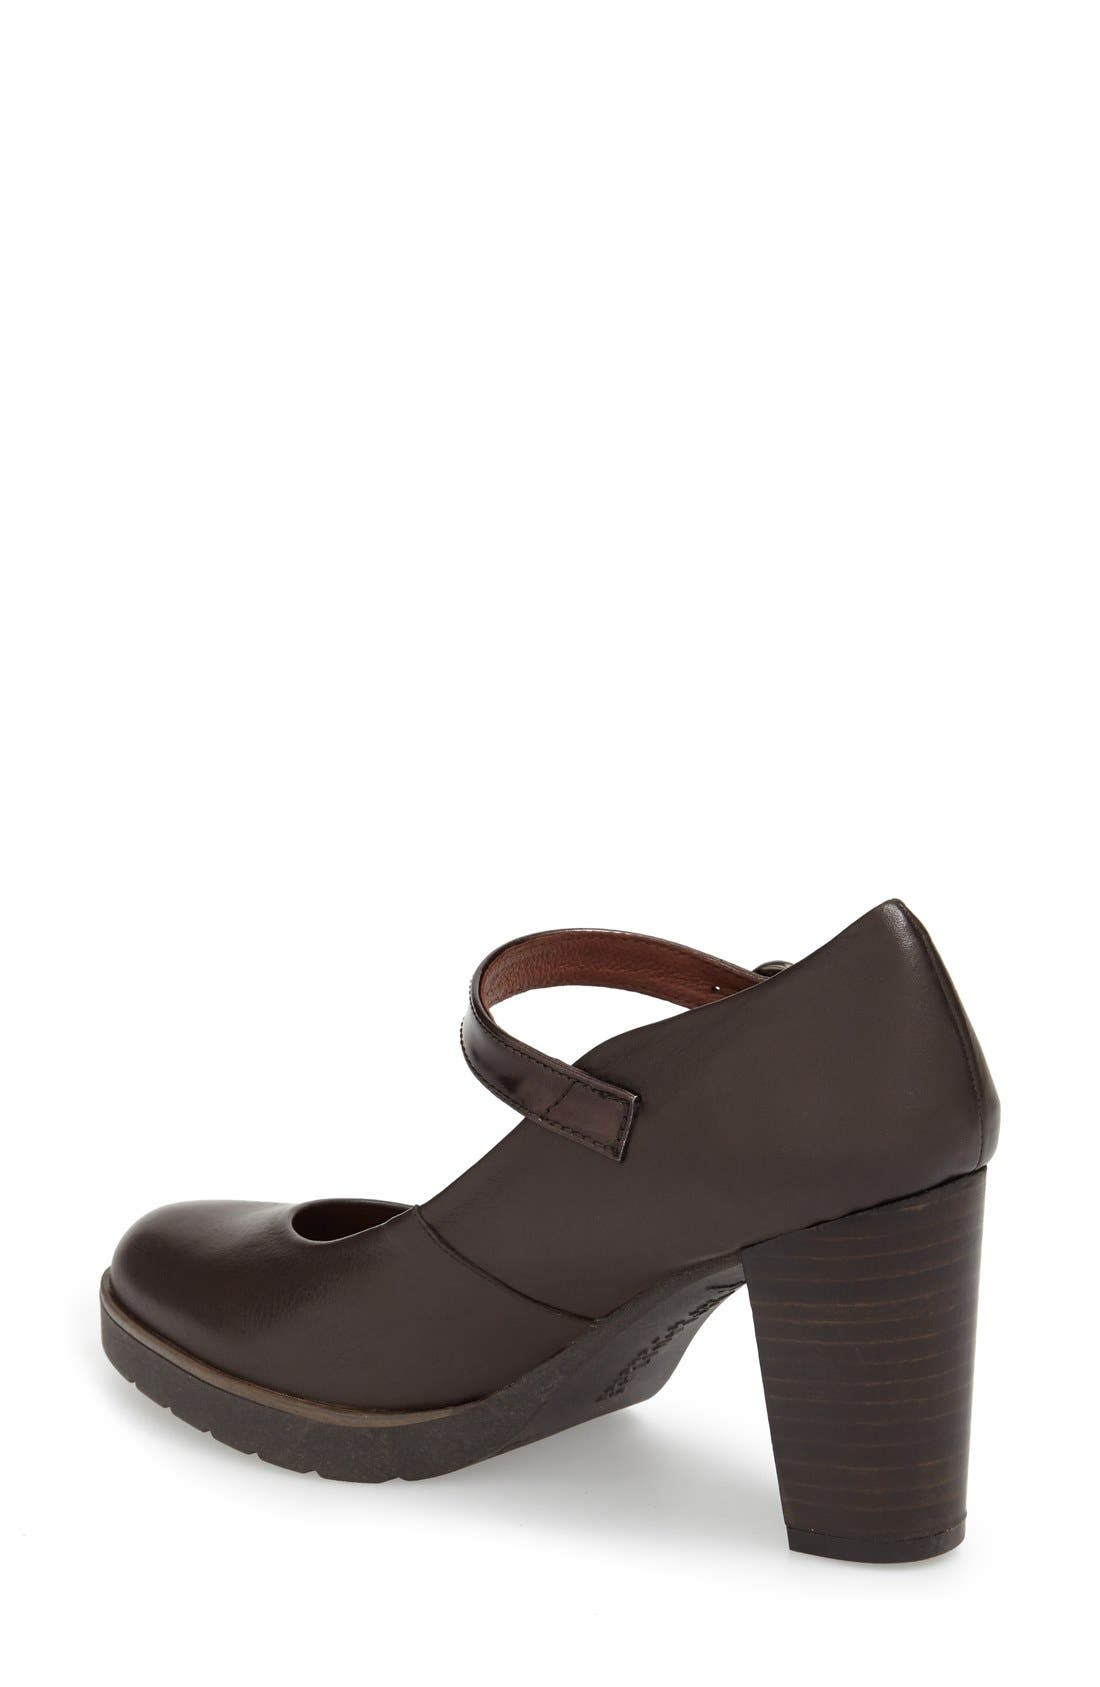 'Veda' Mary Jane Pump,                             Alternate thumbnail 2, color,                             Brown Leather